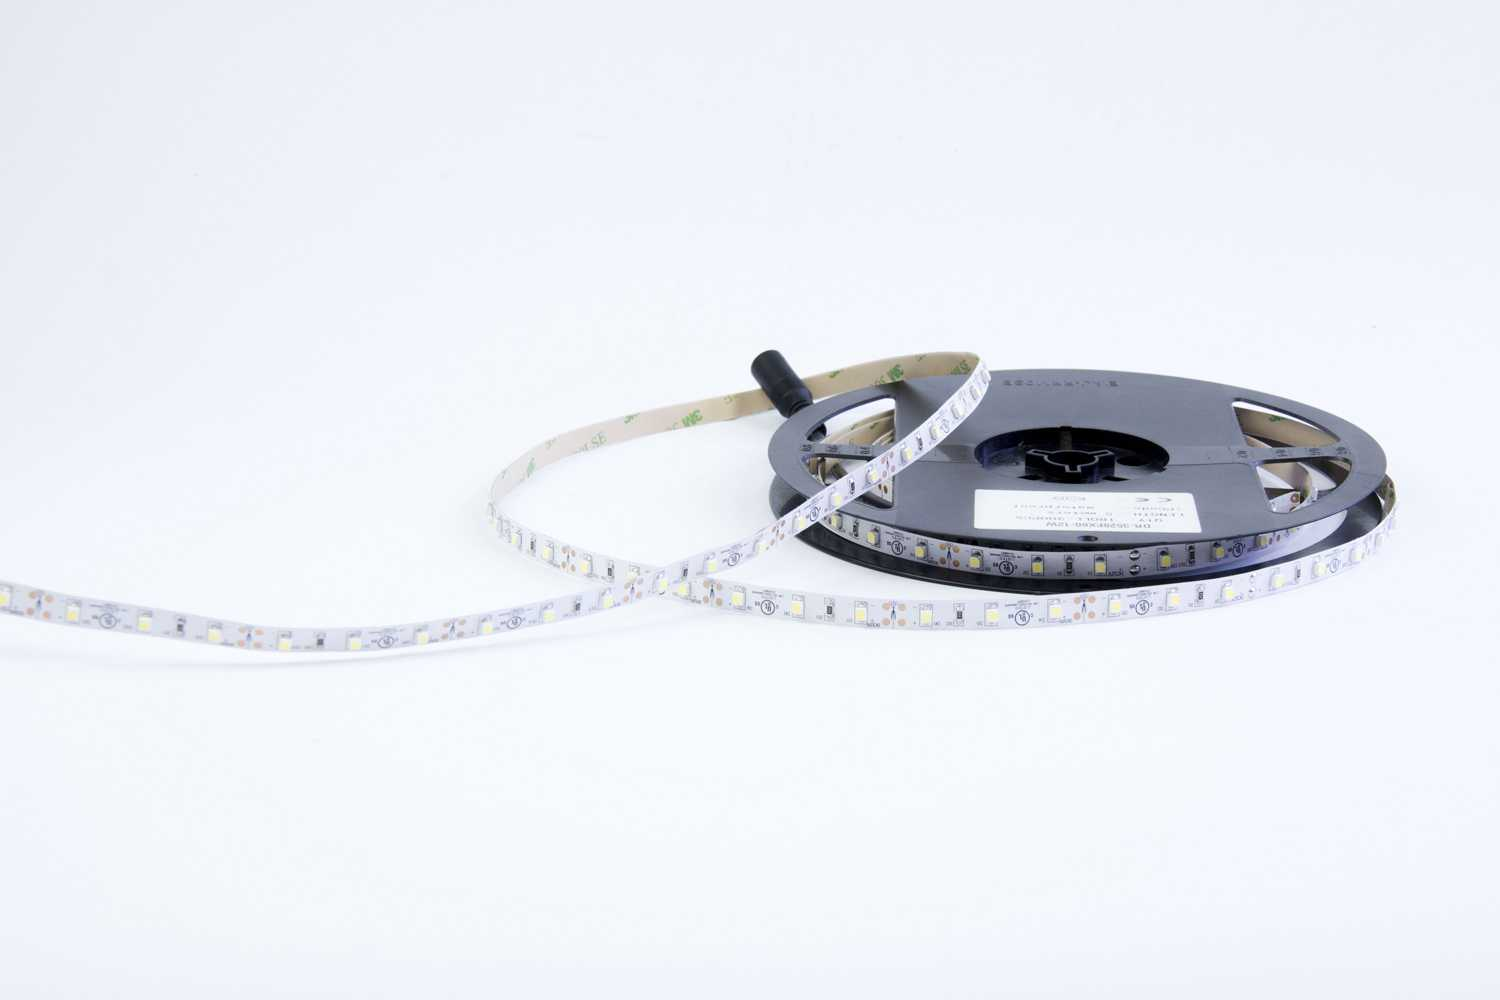 |3528 led strip light specifications|3528 smd led strip specifications|_2